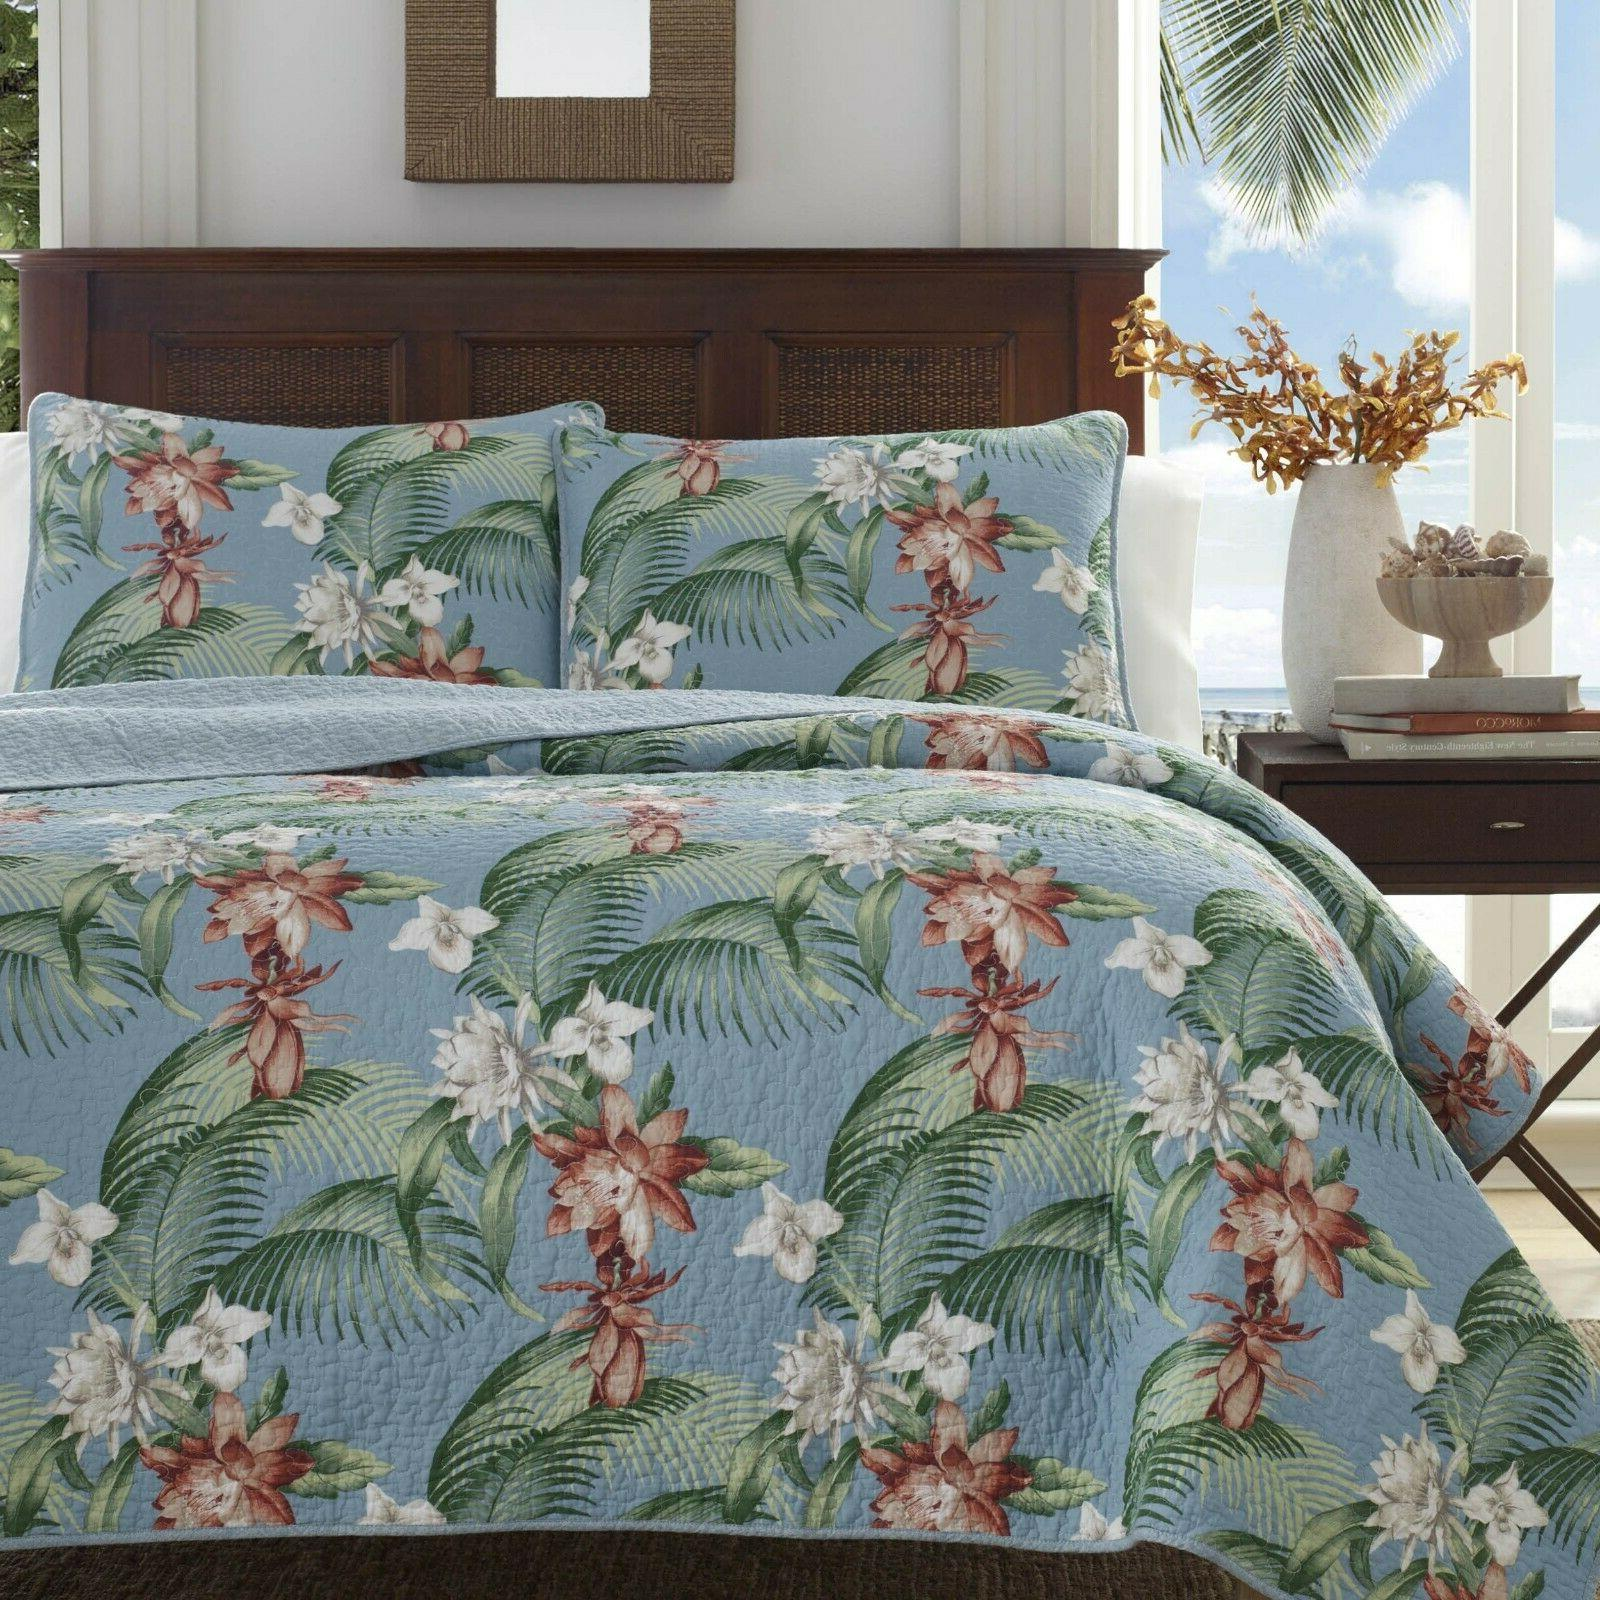 New in Package Bahama Southern Aqua King Incl $240